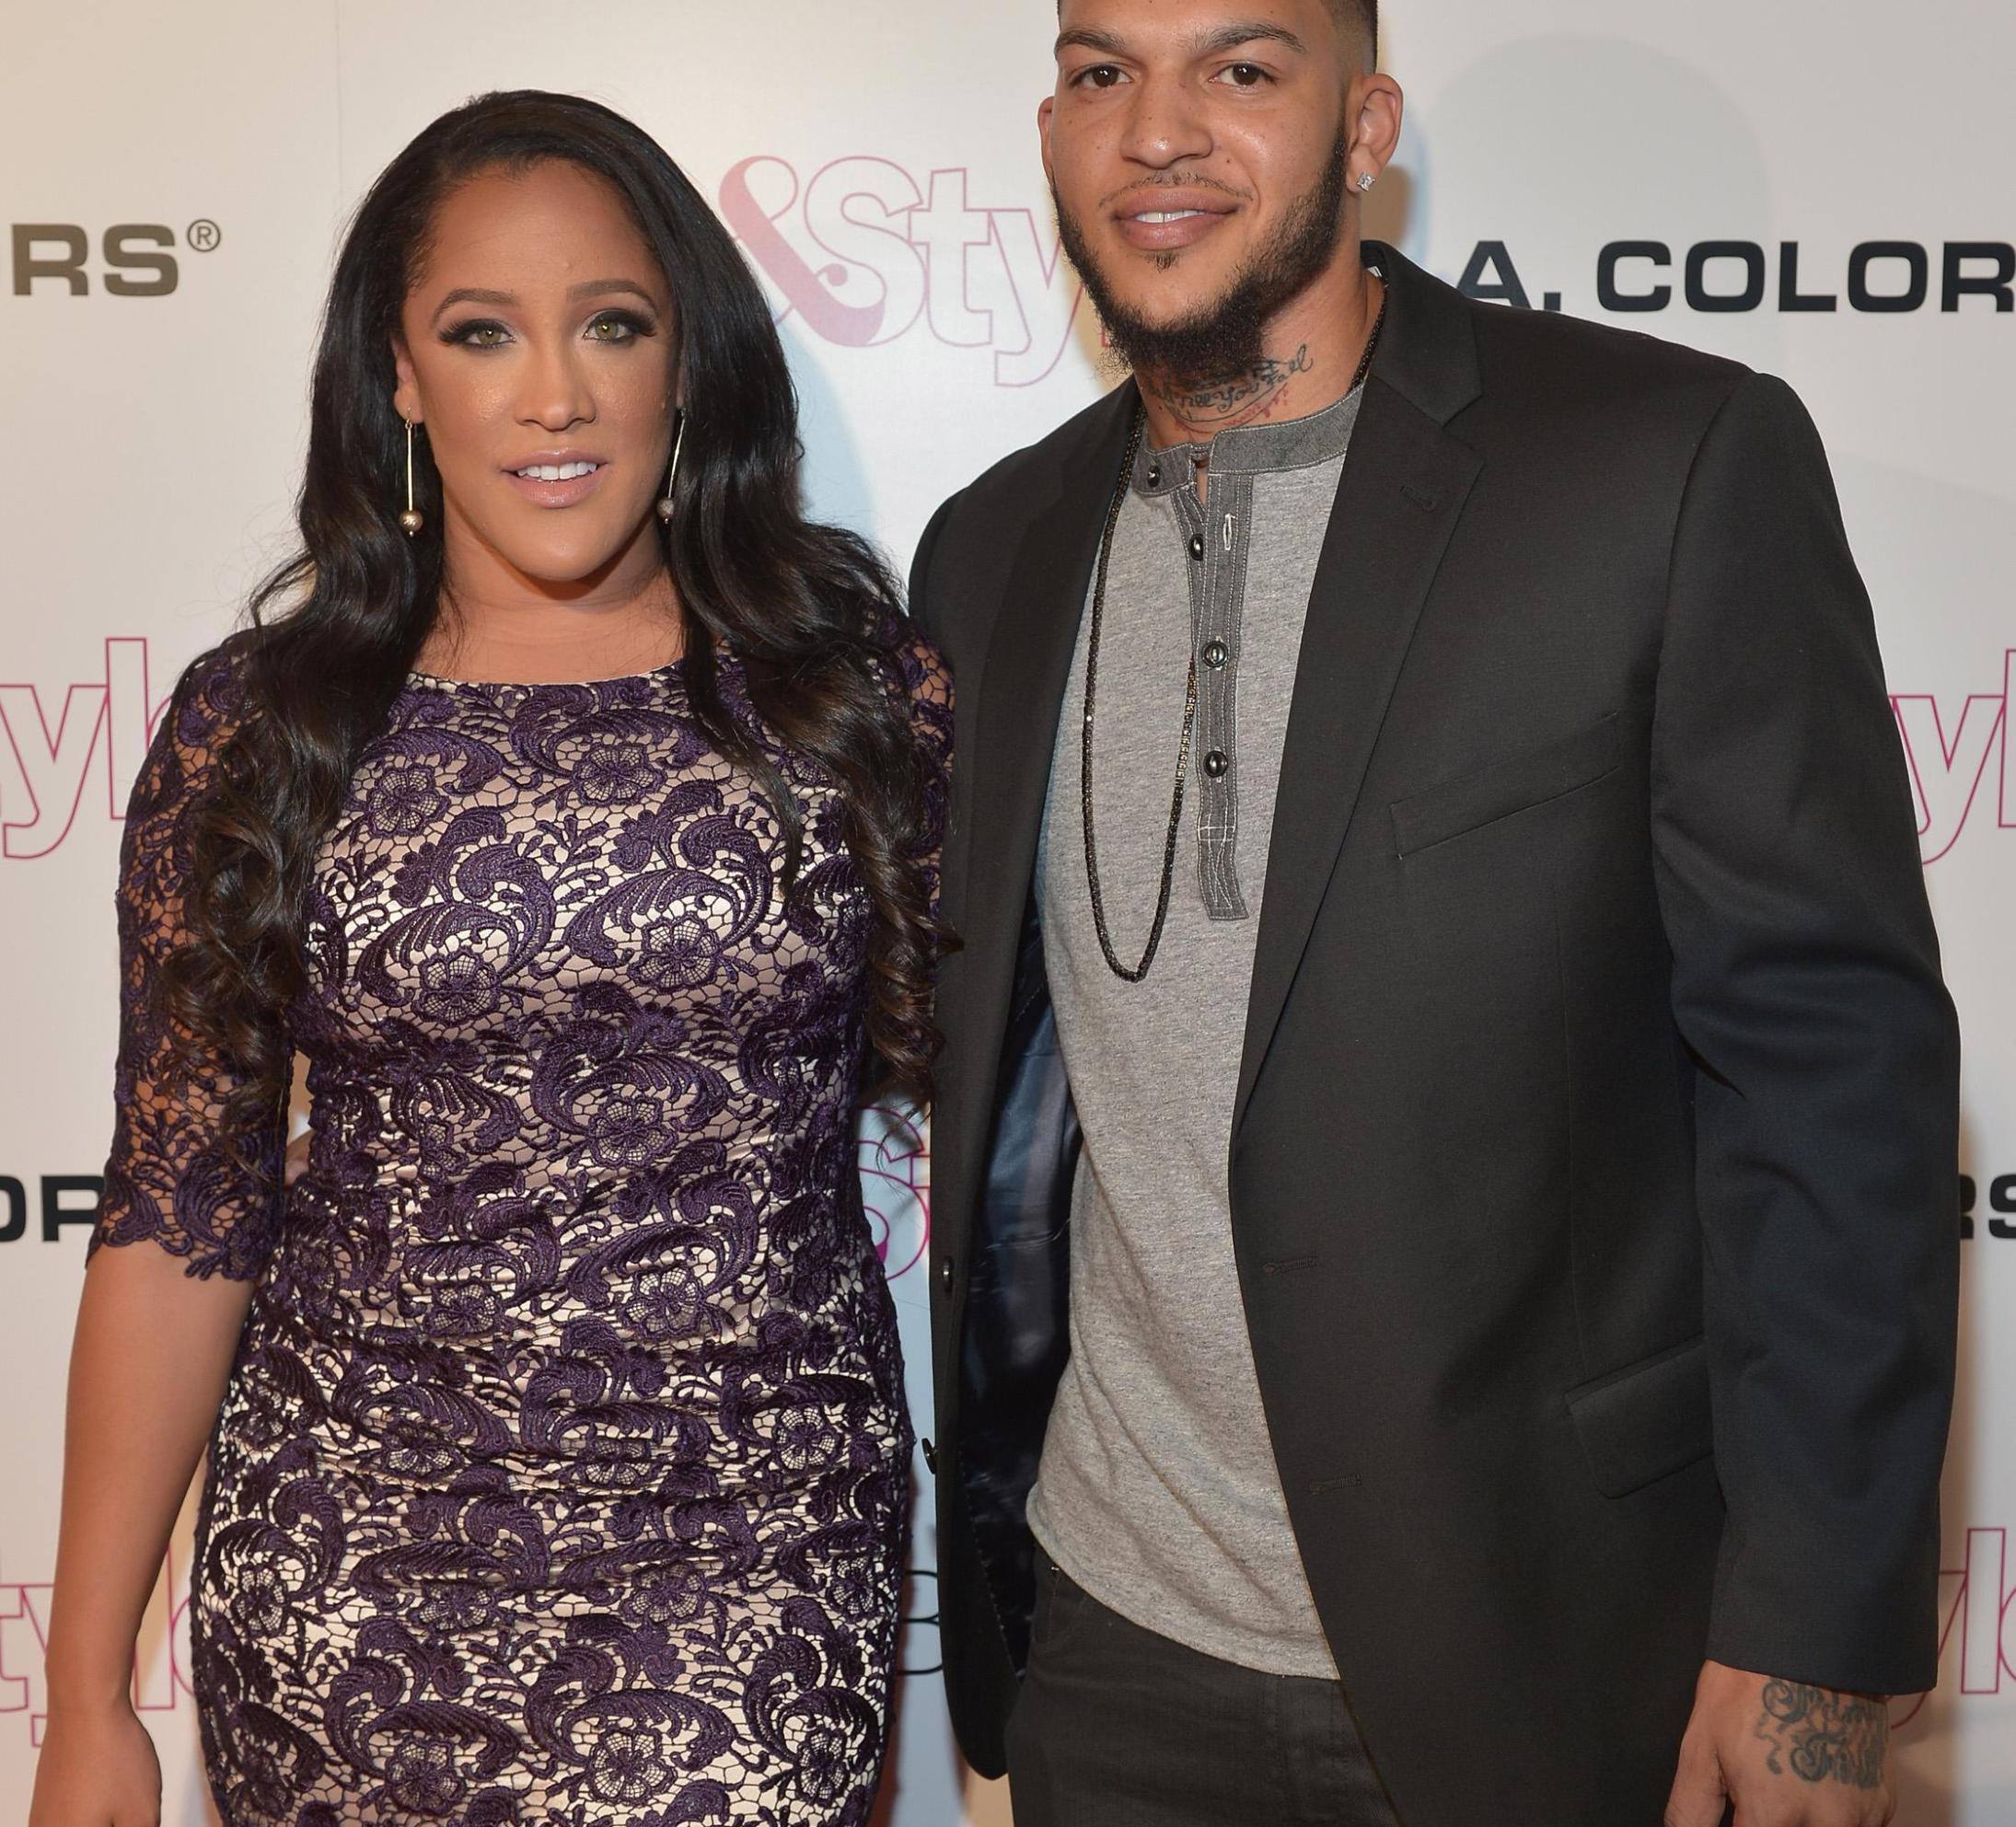 Jacob Payne is married to Celebrity Big Brother star Natalie Nunn